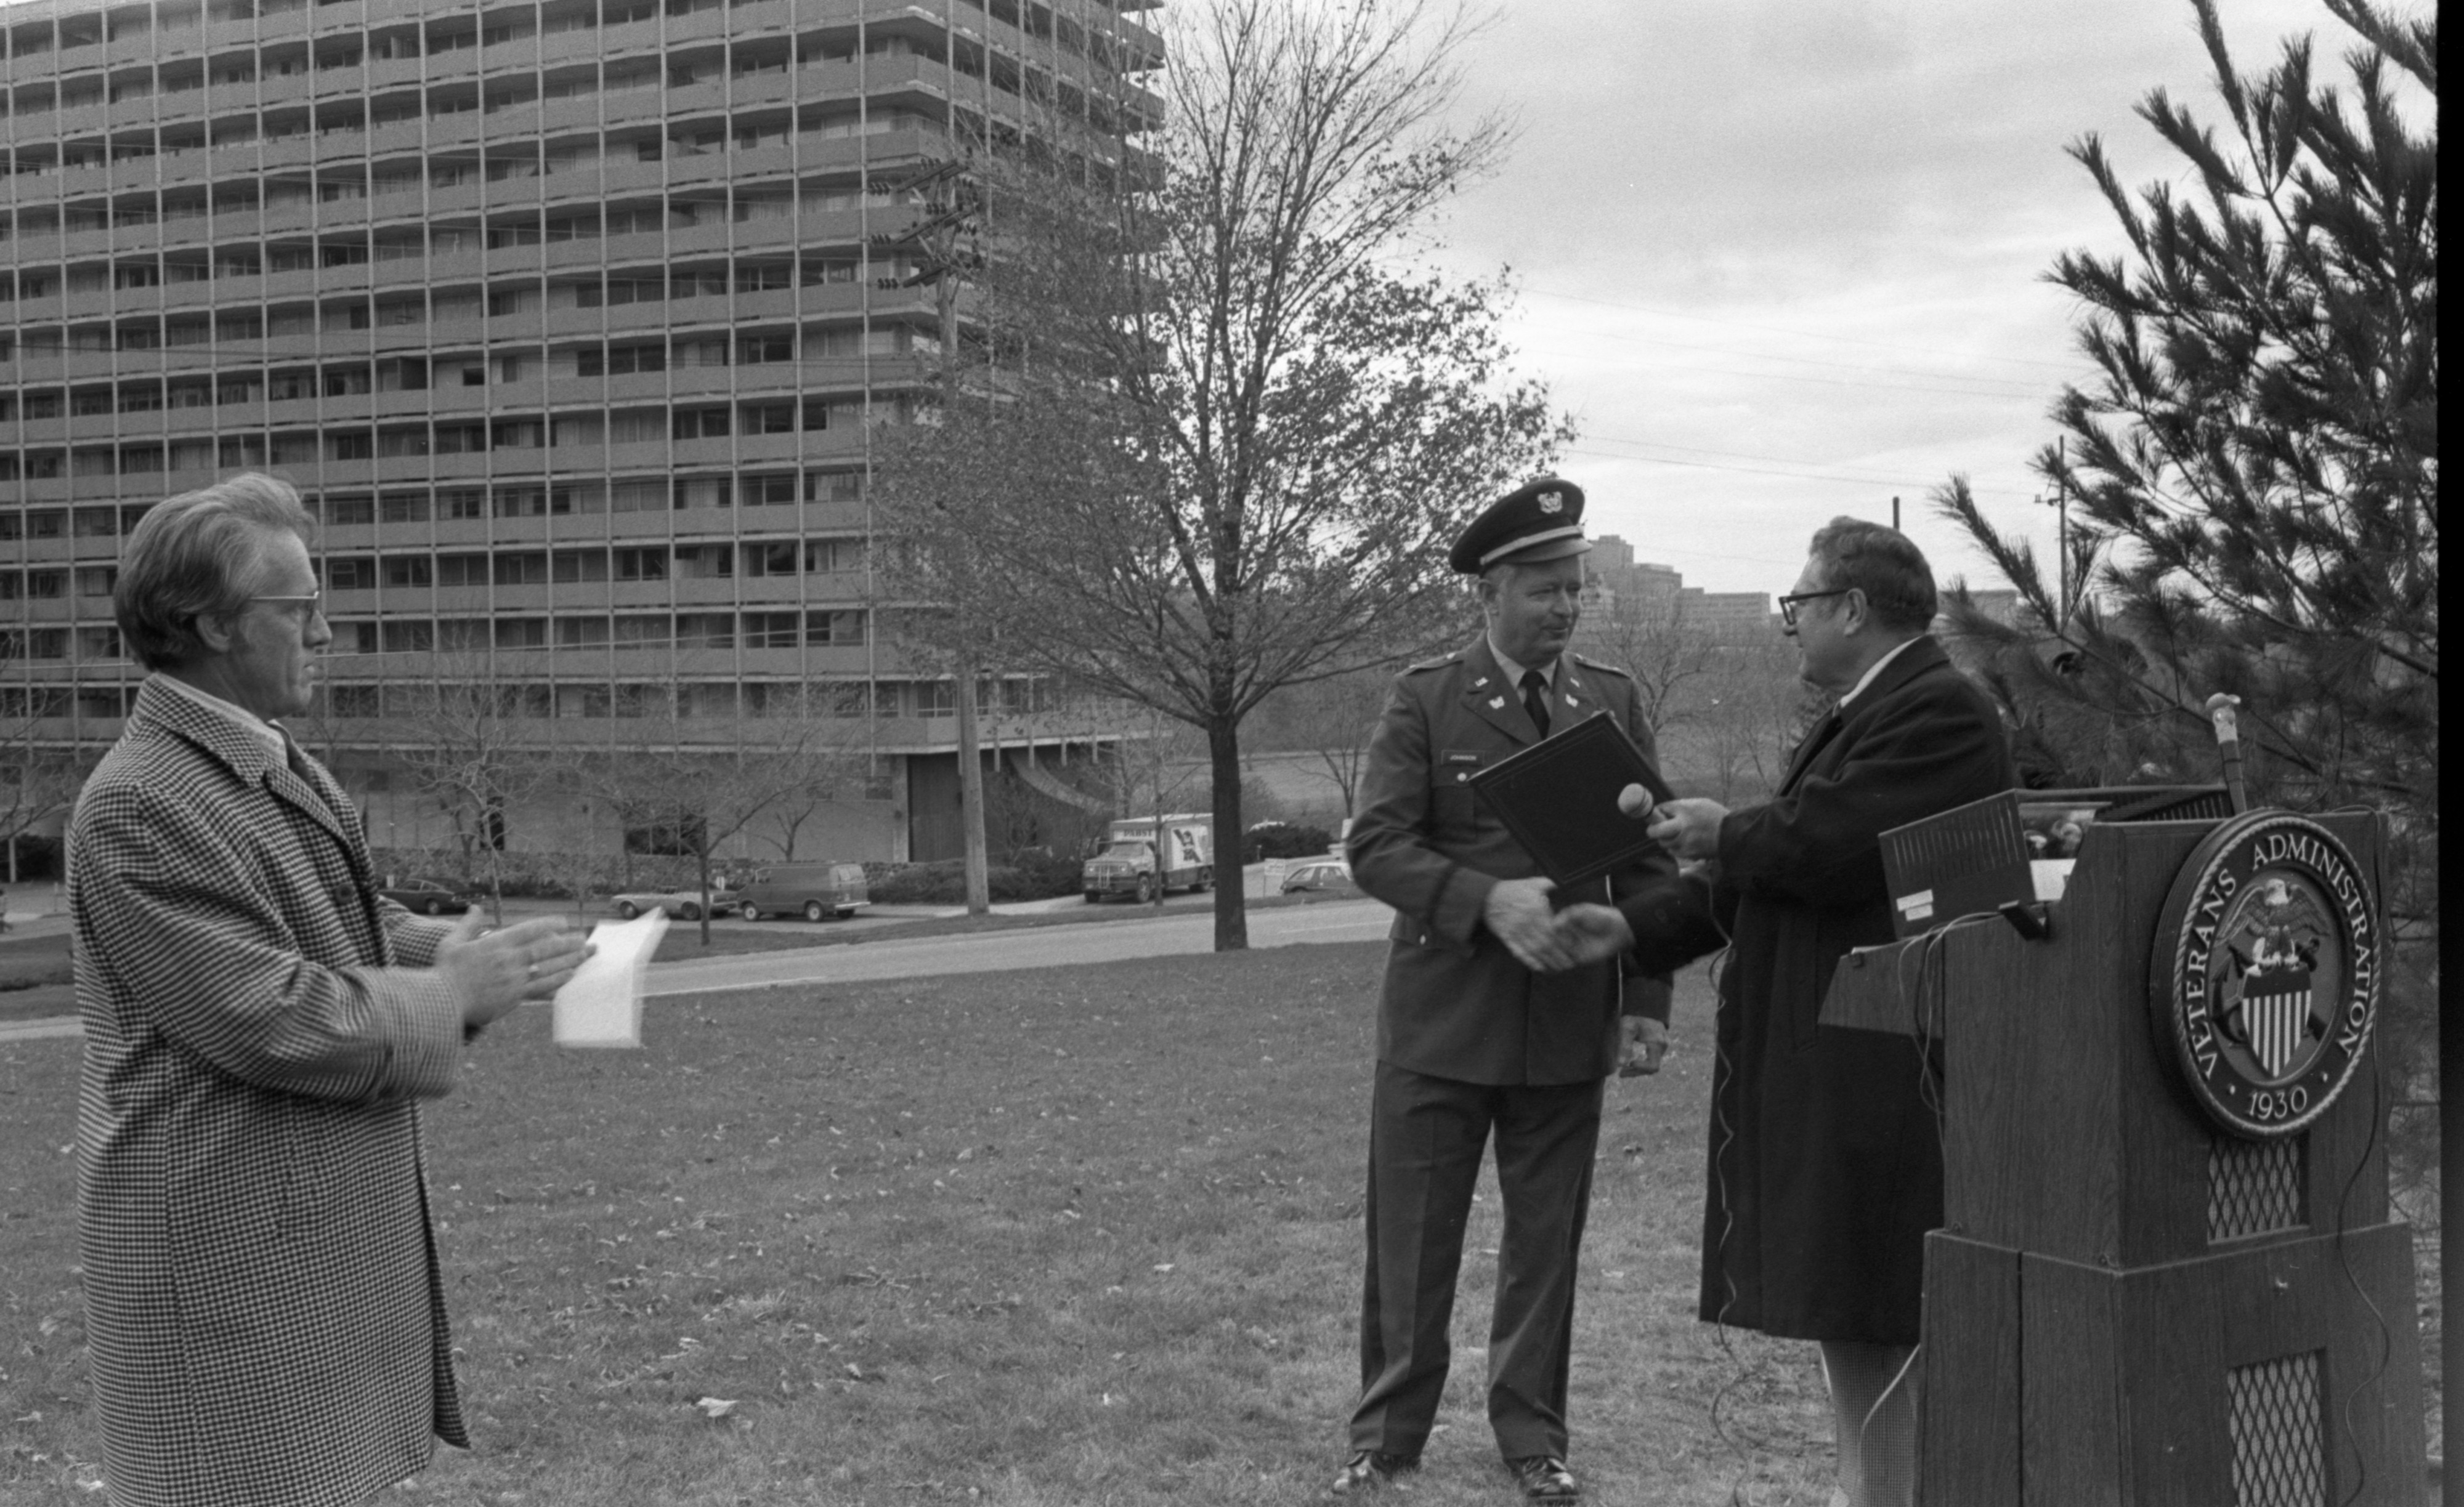 Oscar Johnson Receives A Plaque During The Veterans Day Tree Planting Ceremony At The VA Hospital - November 11, 1976 image